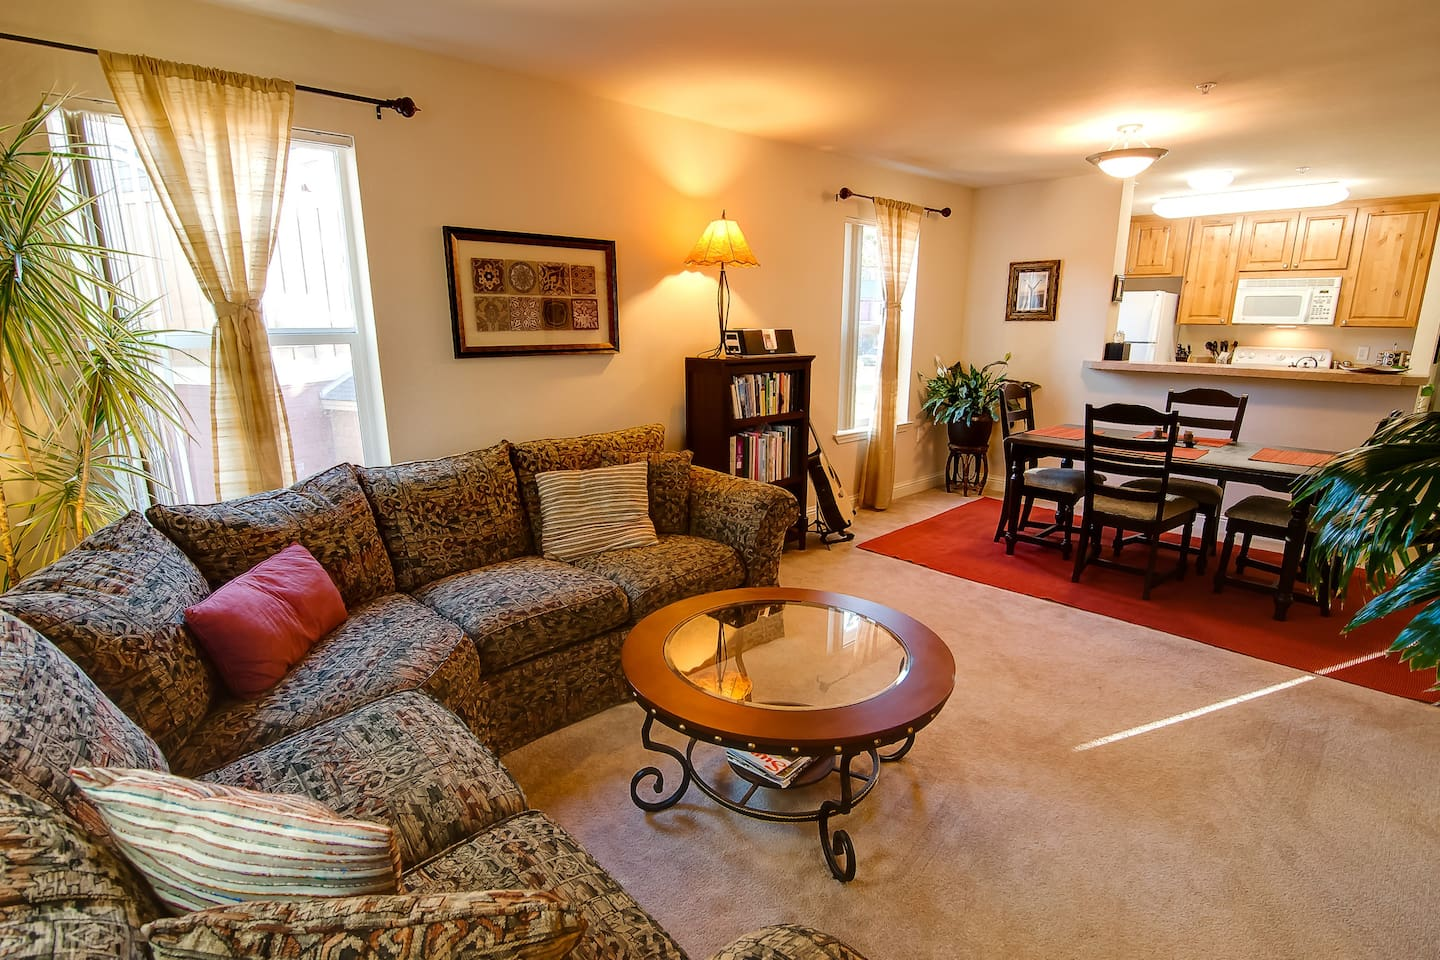 The main living room has a comfortable couch and plenty of room to spread out.